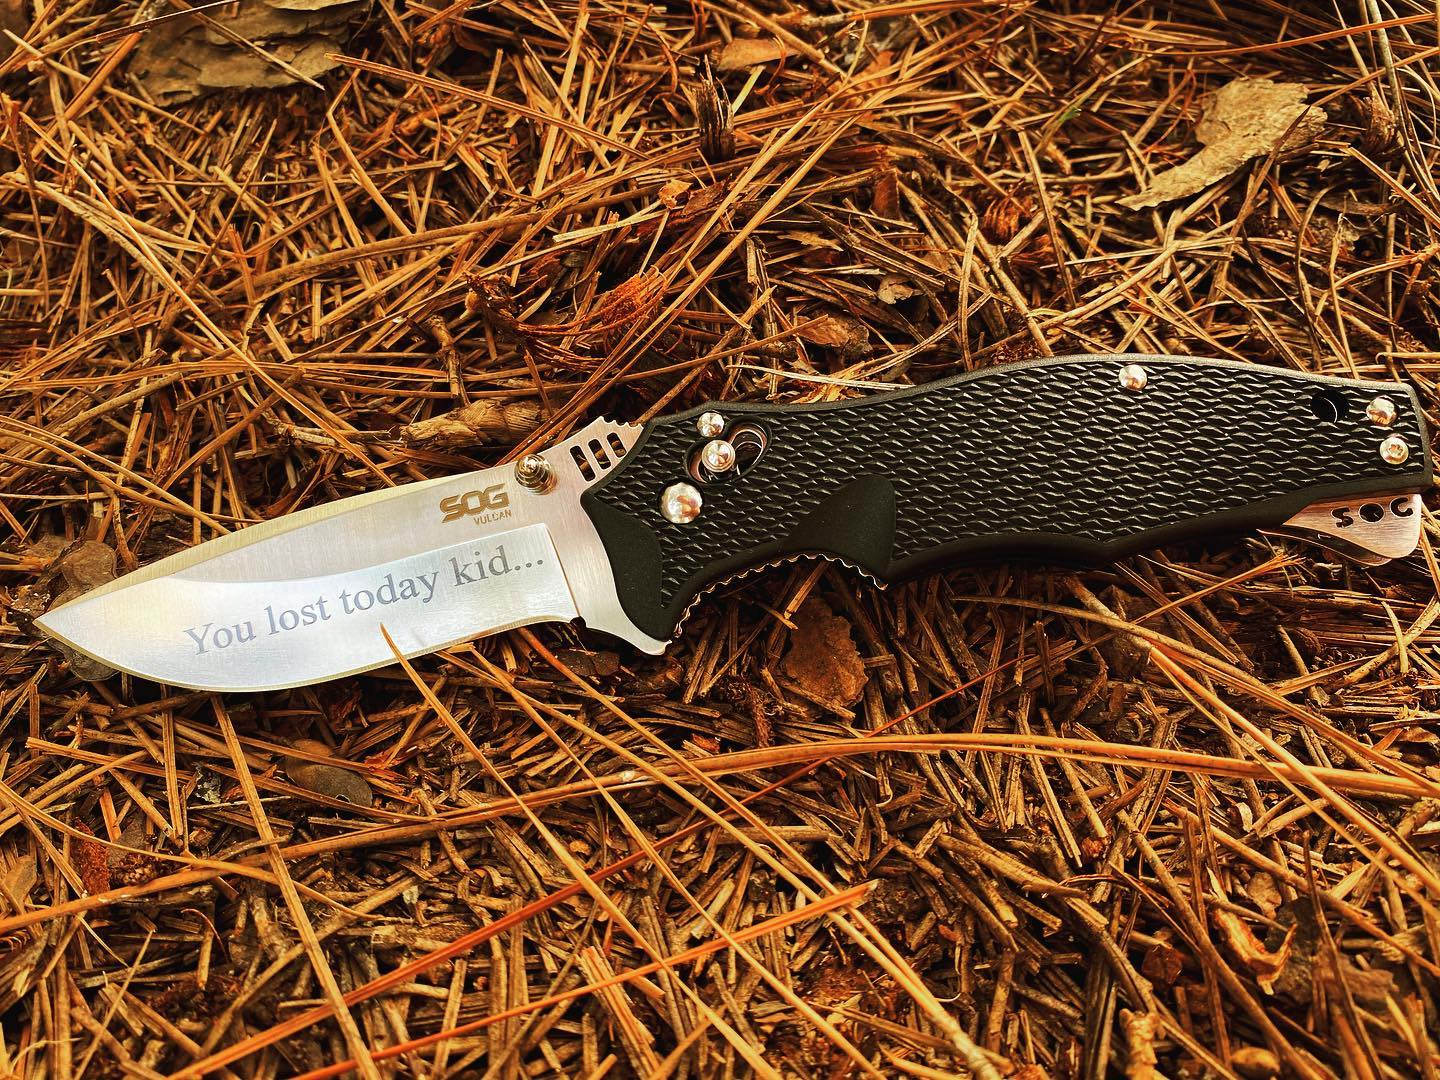 SOG Vulcan VL-01 knife.  This was just engraved -You lost today kid! But keep trying and you can be a winner! #vulcan #vulcanknives #VL-01 #engravedknives